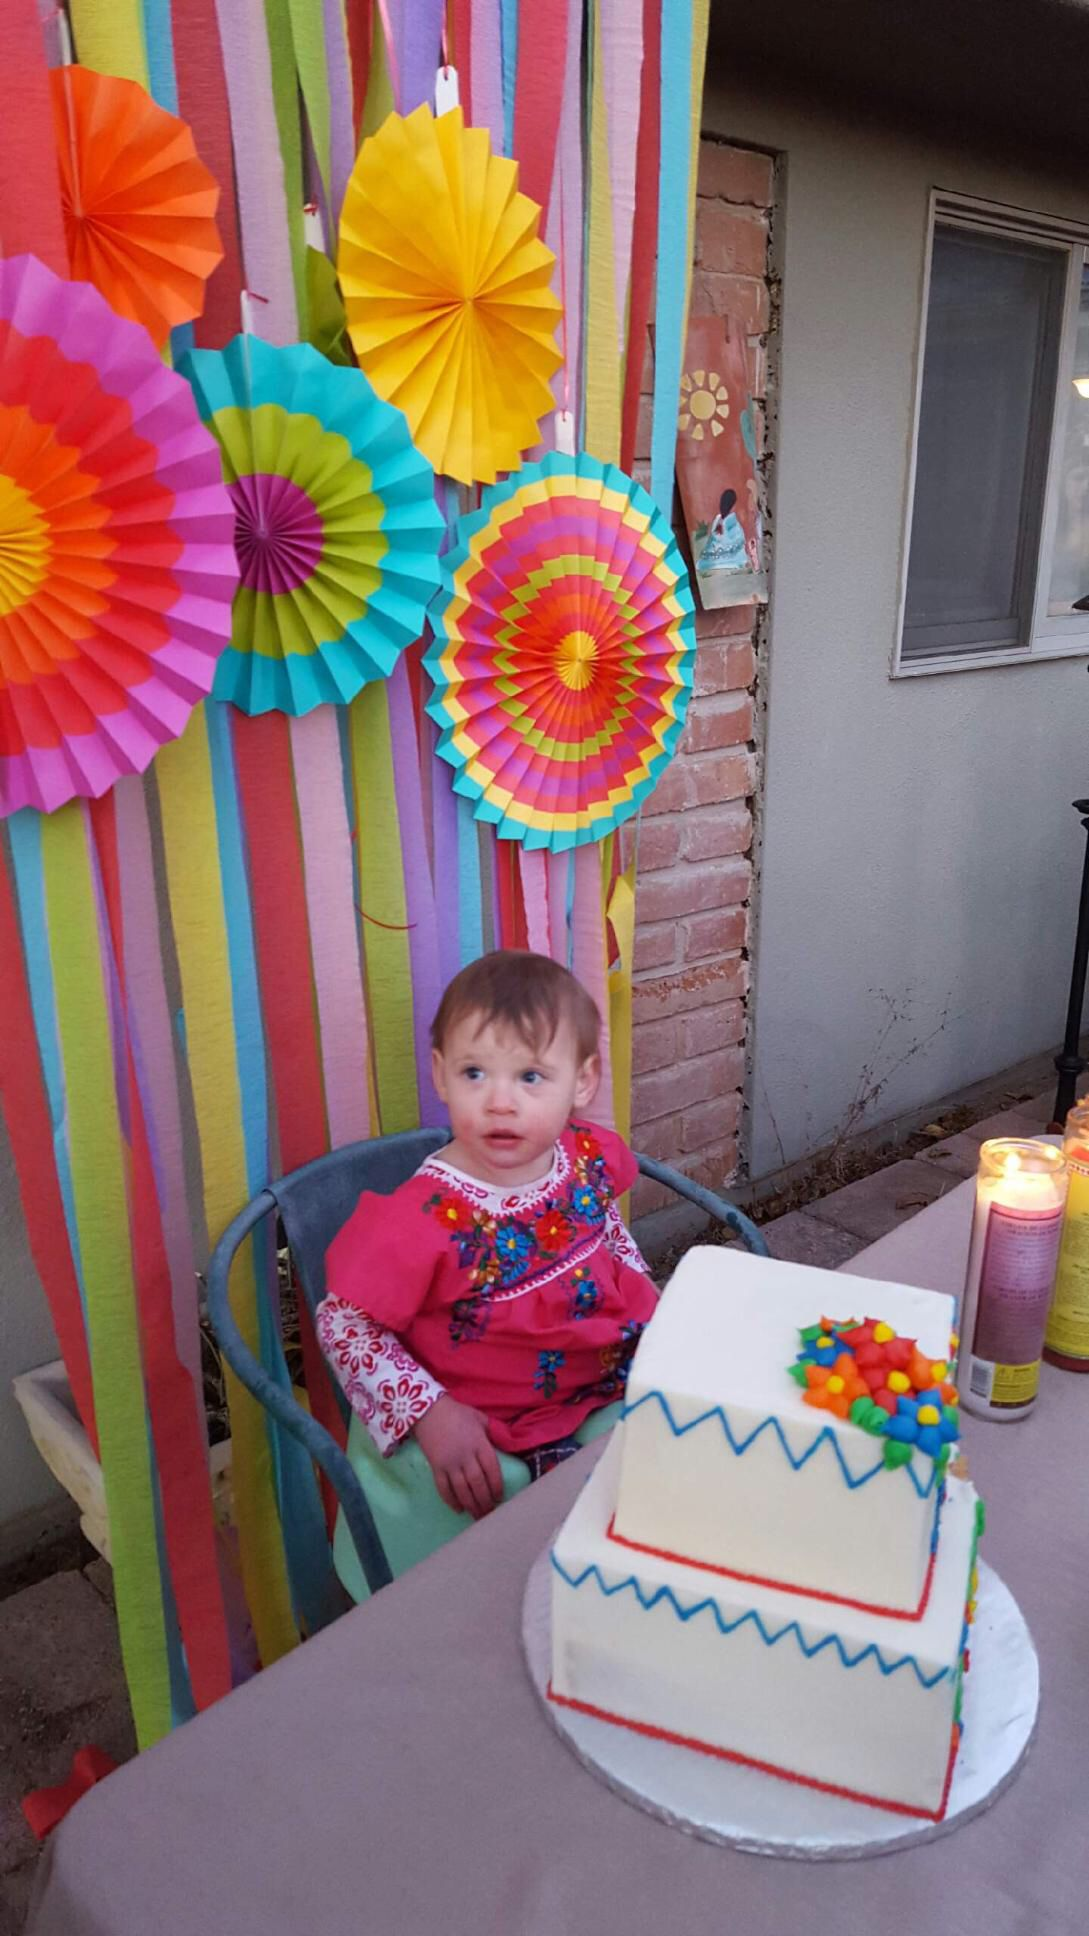 Fiesta party, colorful background, cute twoyearold